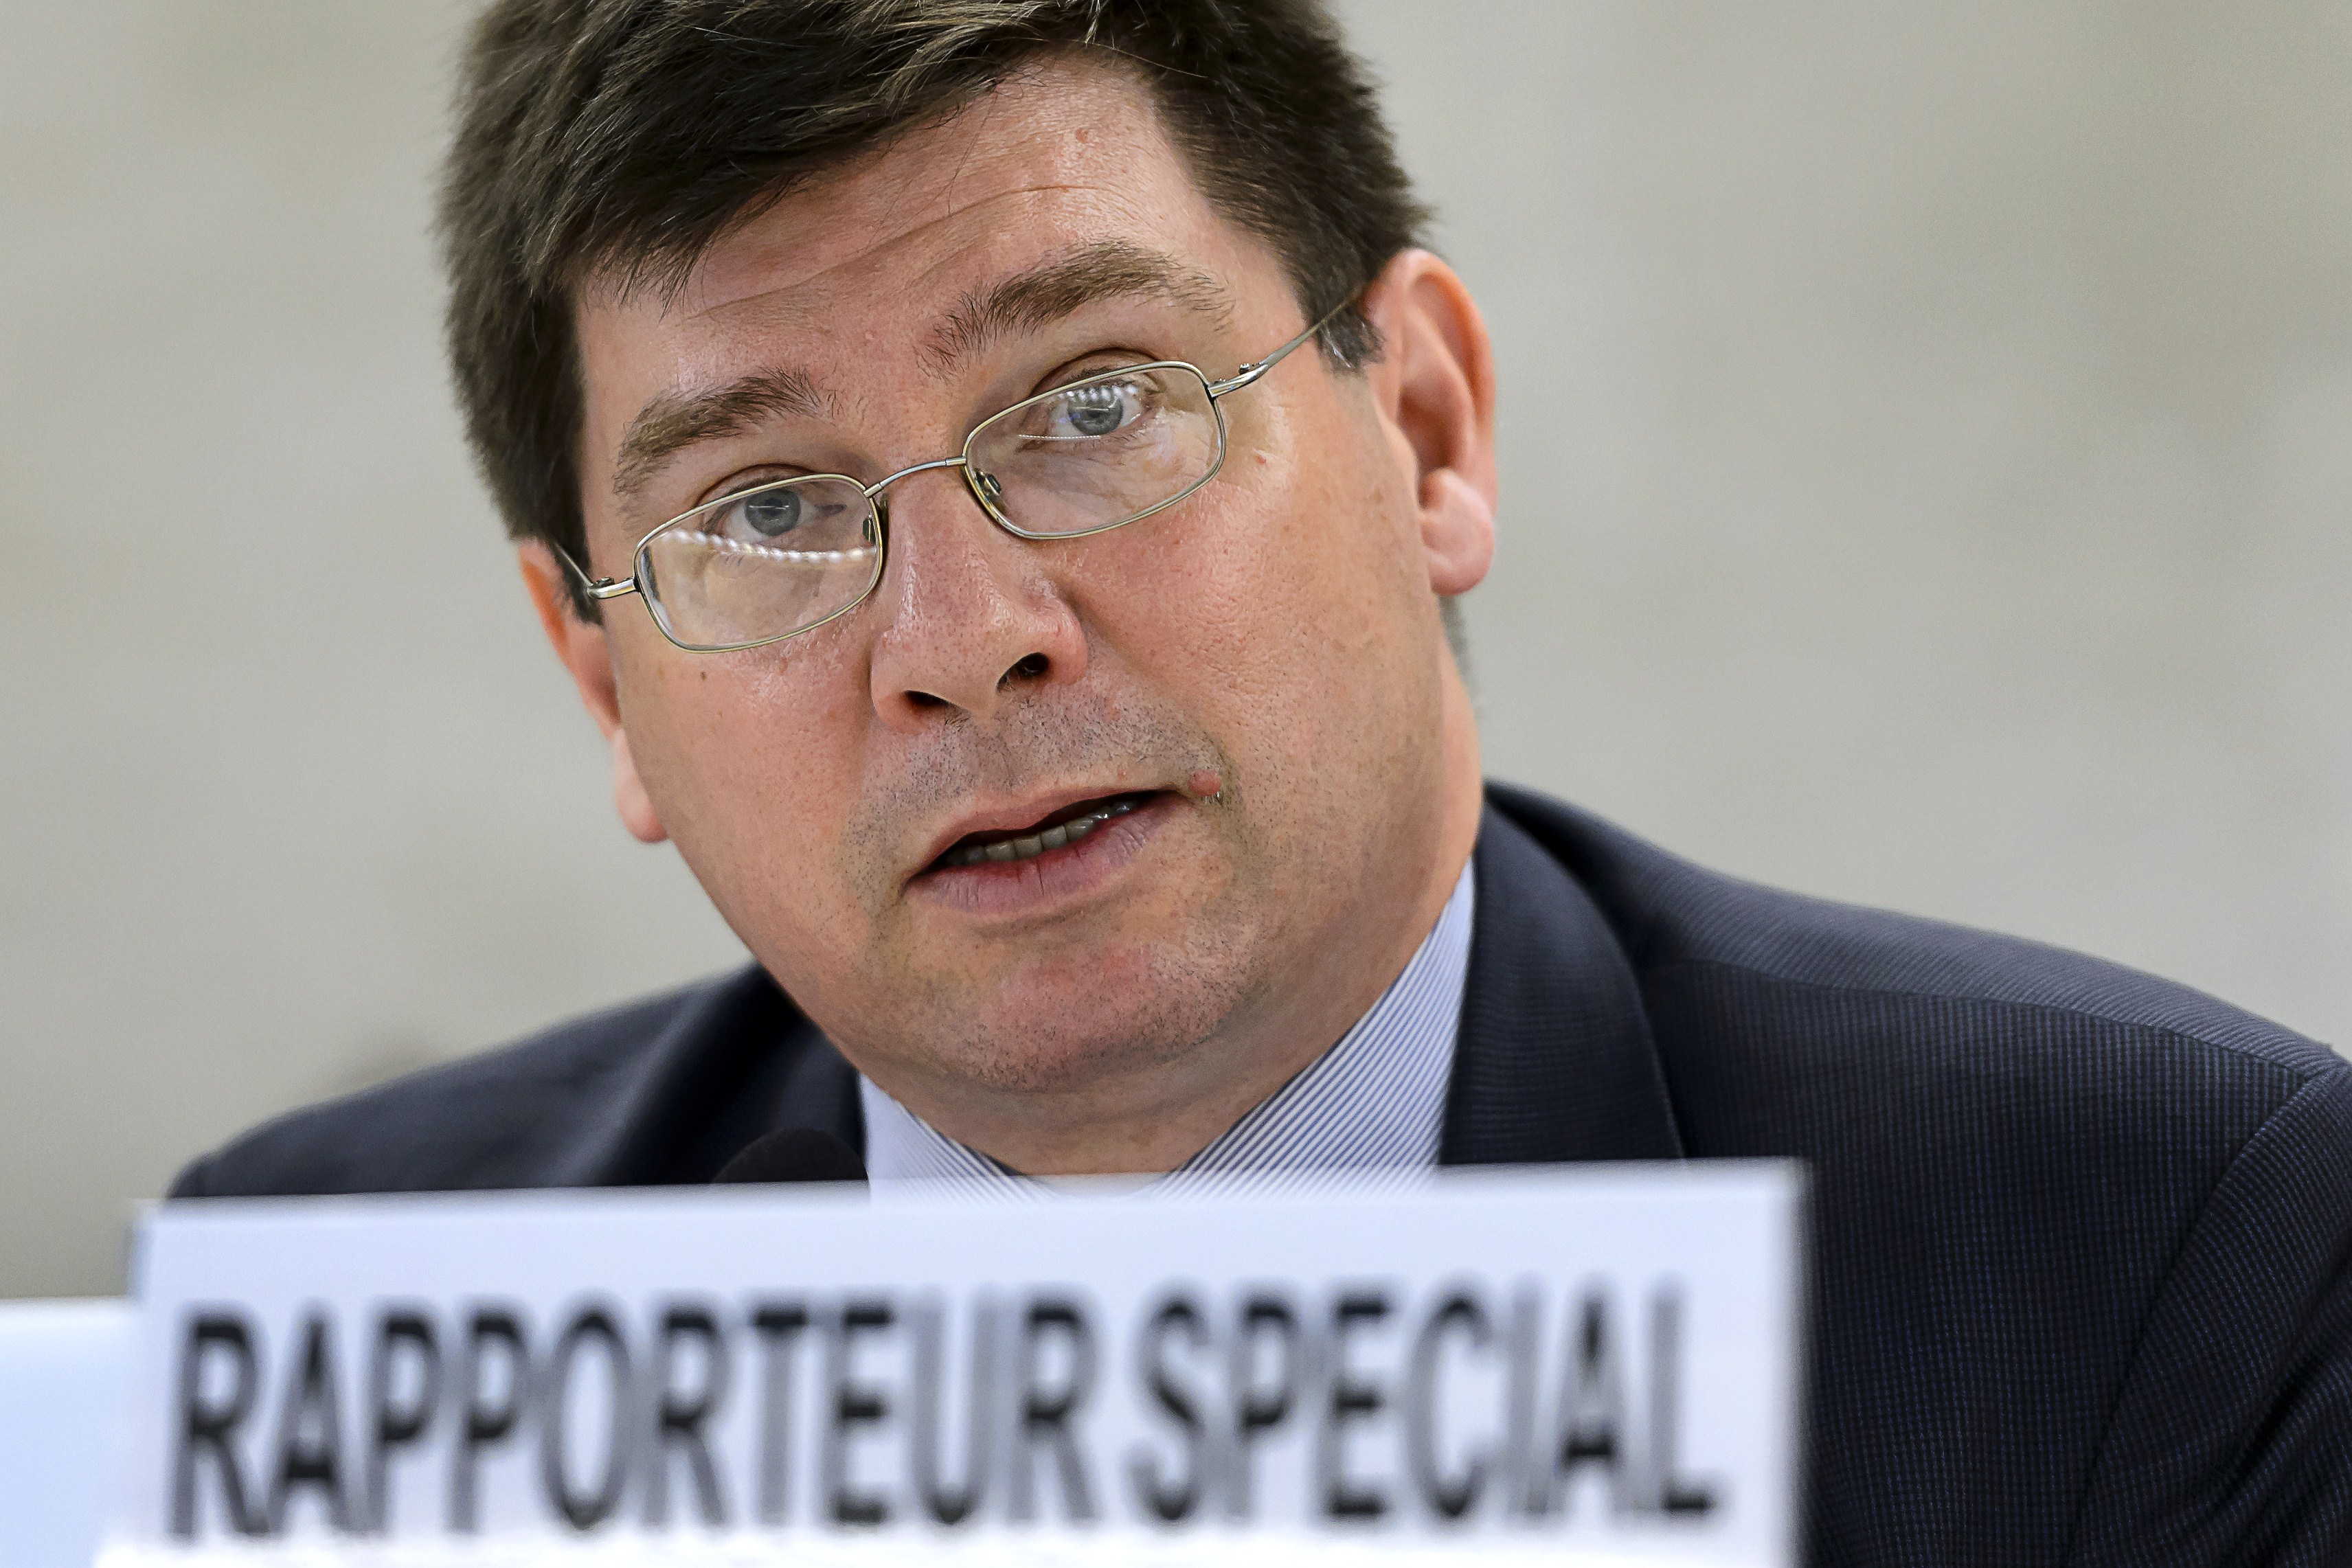 U.N. Special Rapporteur on human rights of migrants François Crépeau delivers his speech during a session of the U.N. Human Rights Council on June 15, 2015, in Geneva